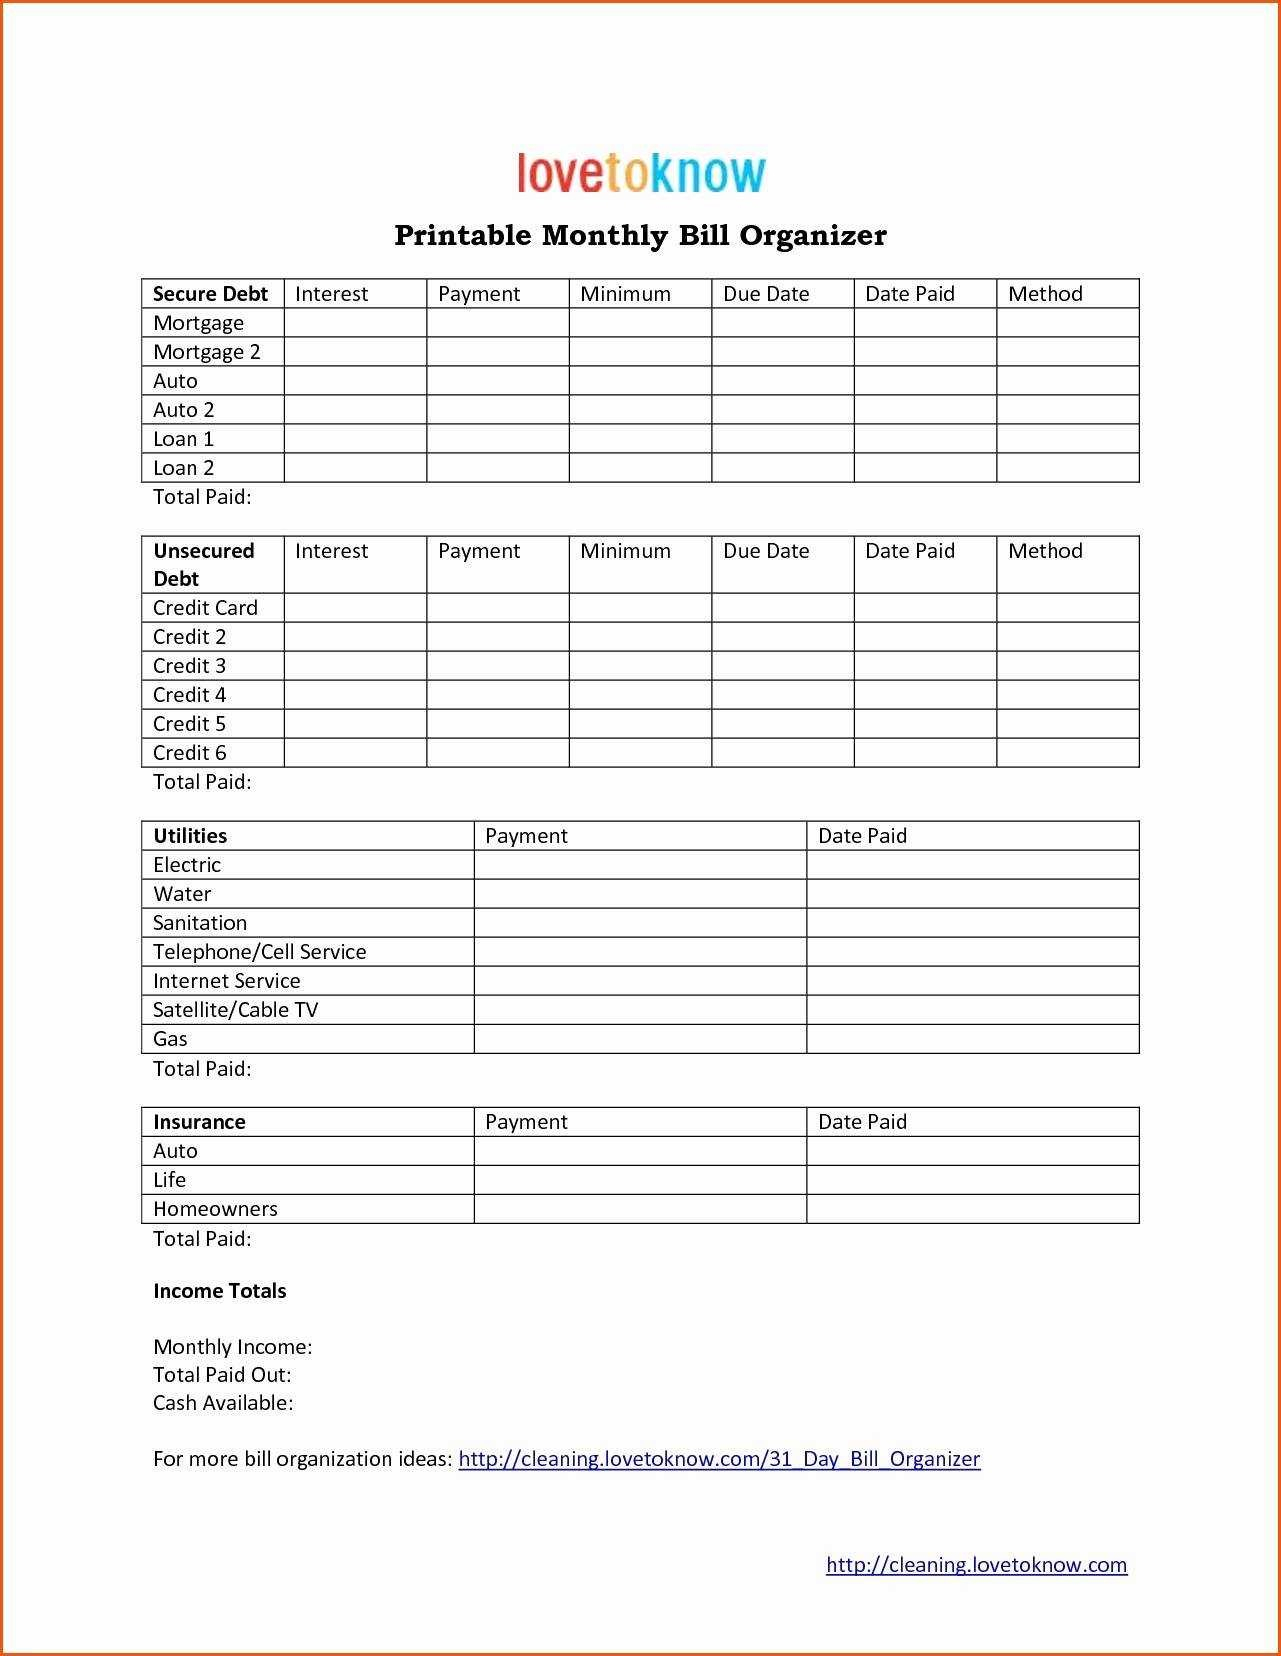 Monthly Profit And Loss Statement Template And Bill Pay Calendar regarding Monthly Bill Calendar Template Printable